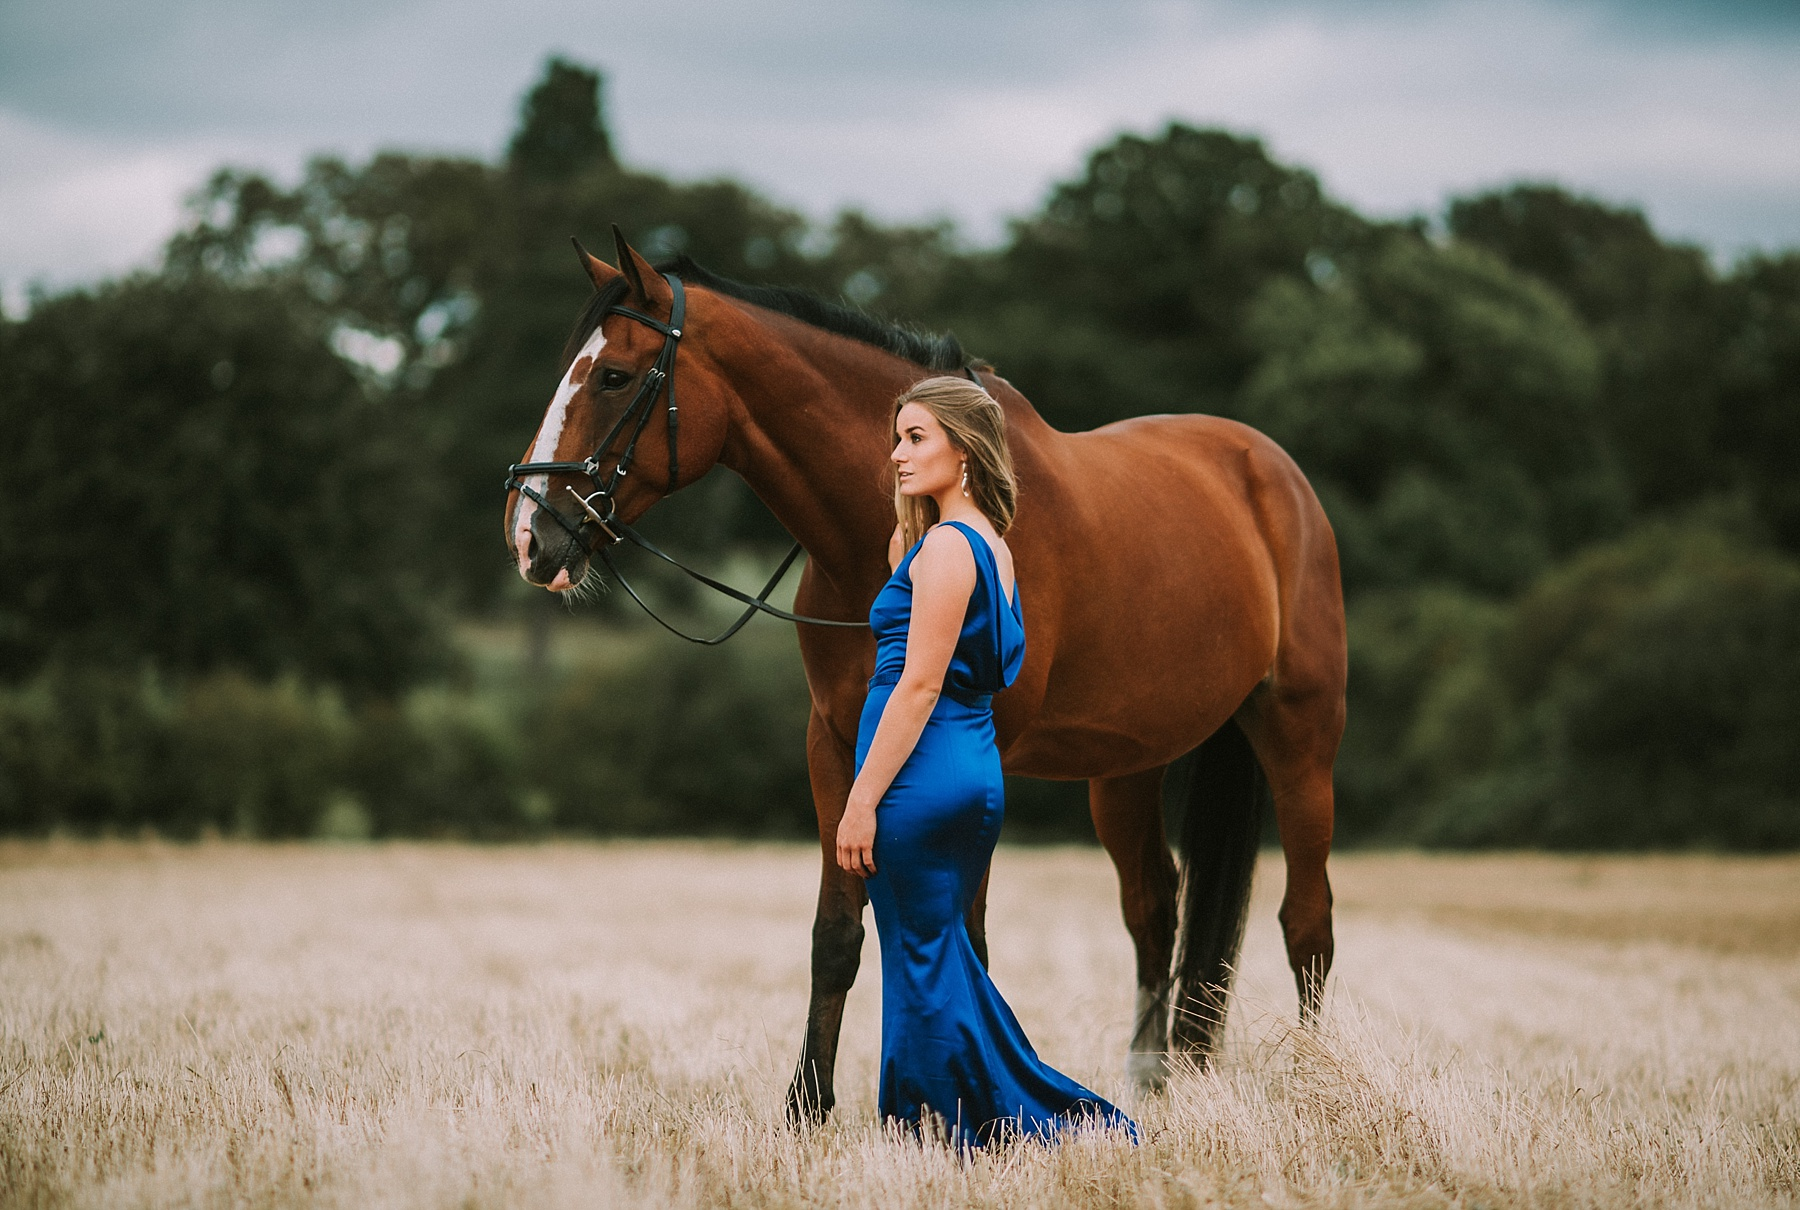 horse photographer in the south east uk